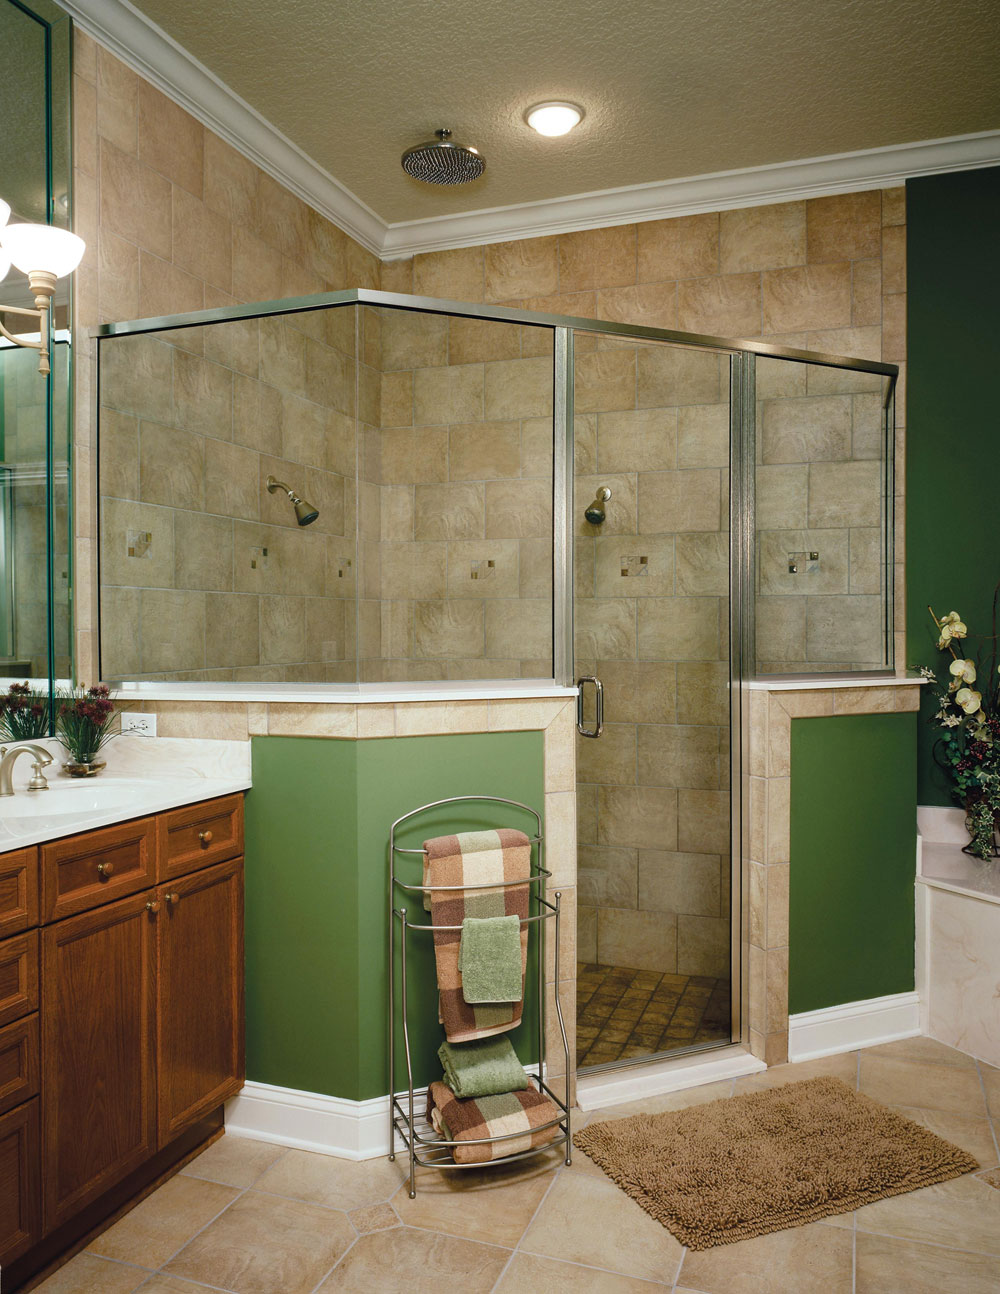 : frosted glass shower doors featured top frameless sliding glass shower doors bathroom remodeling ideas